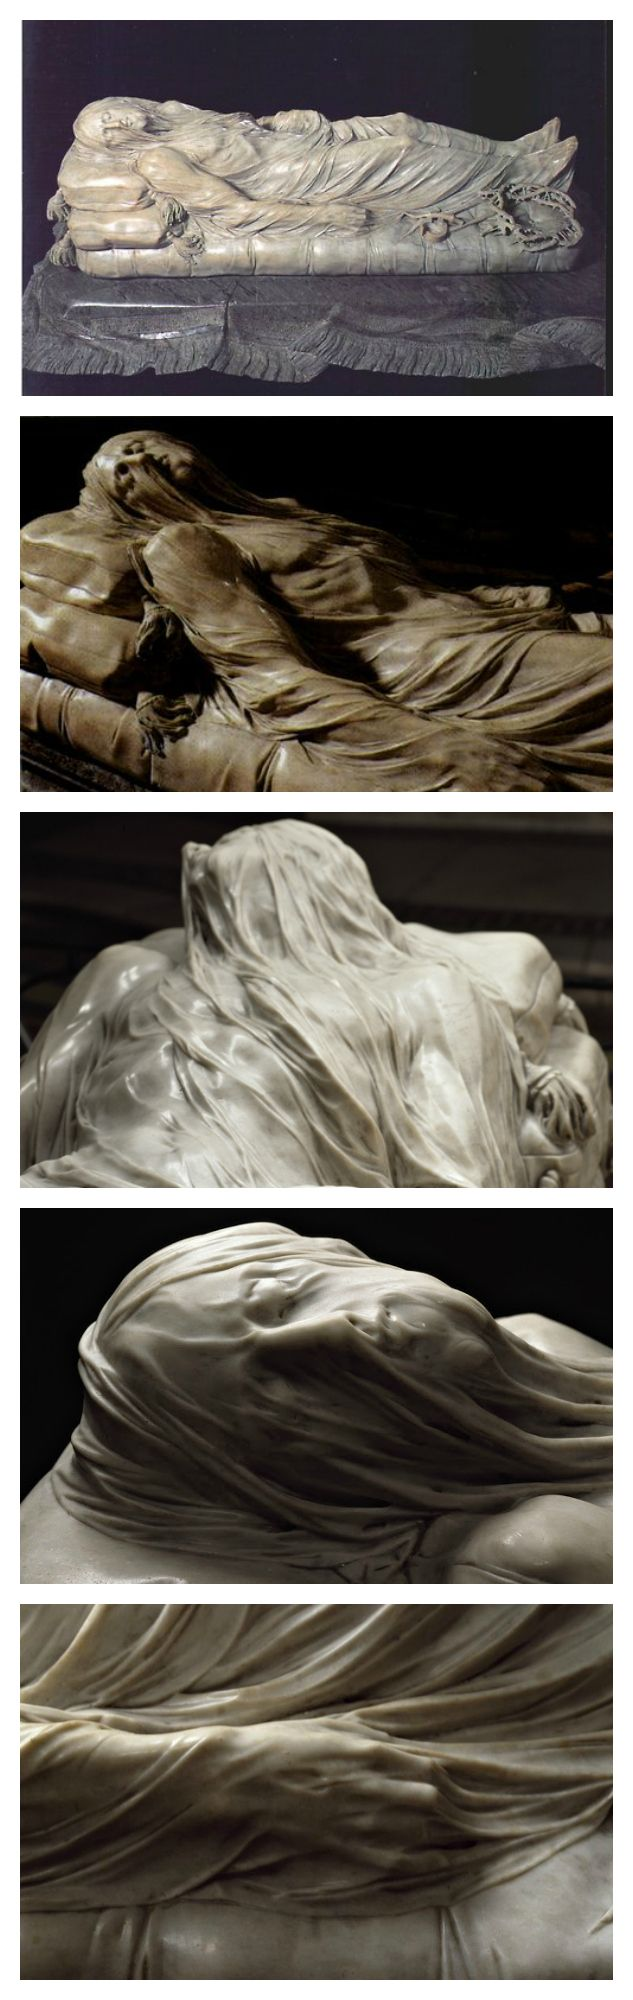 Giuseppe Sanmartino, The Veiled Christ, 1753, Marble, The Chapel of Sansavero, Naples, Italy (Baroque)